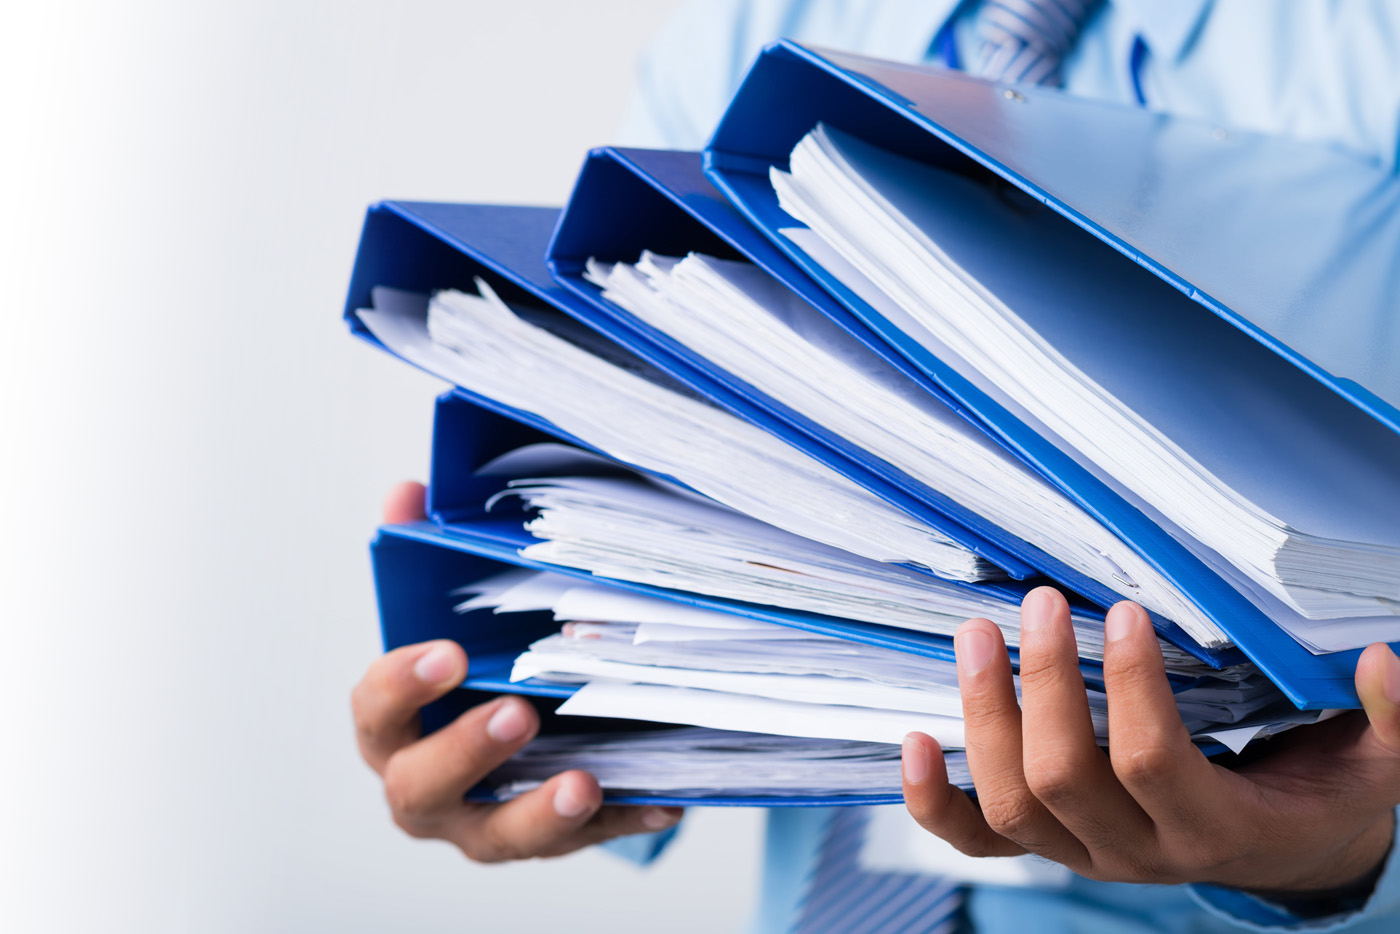 A persons holding a stack of binders